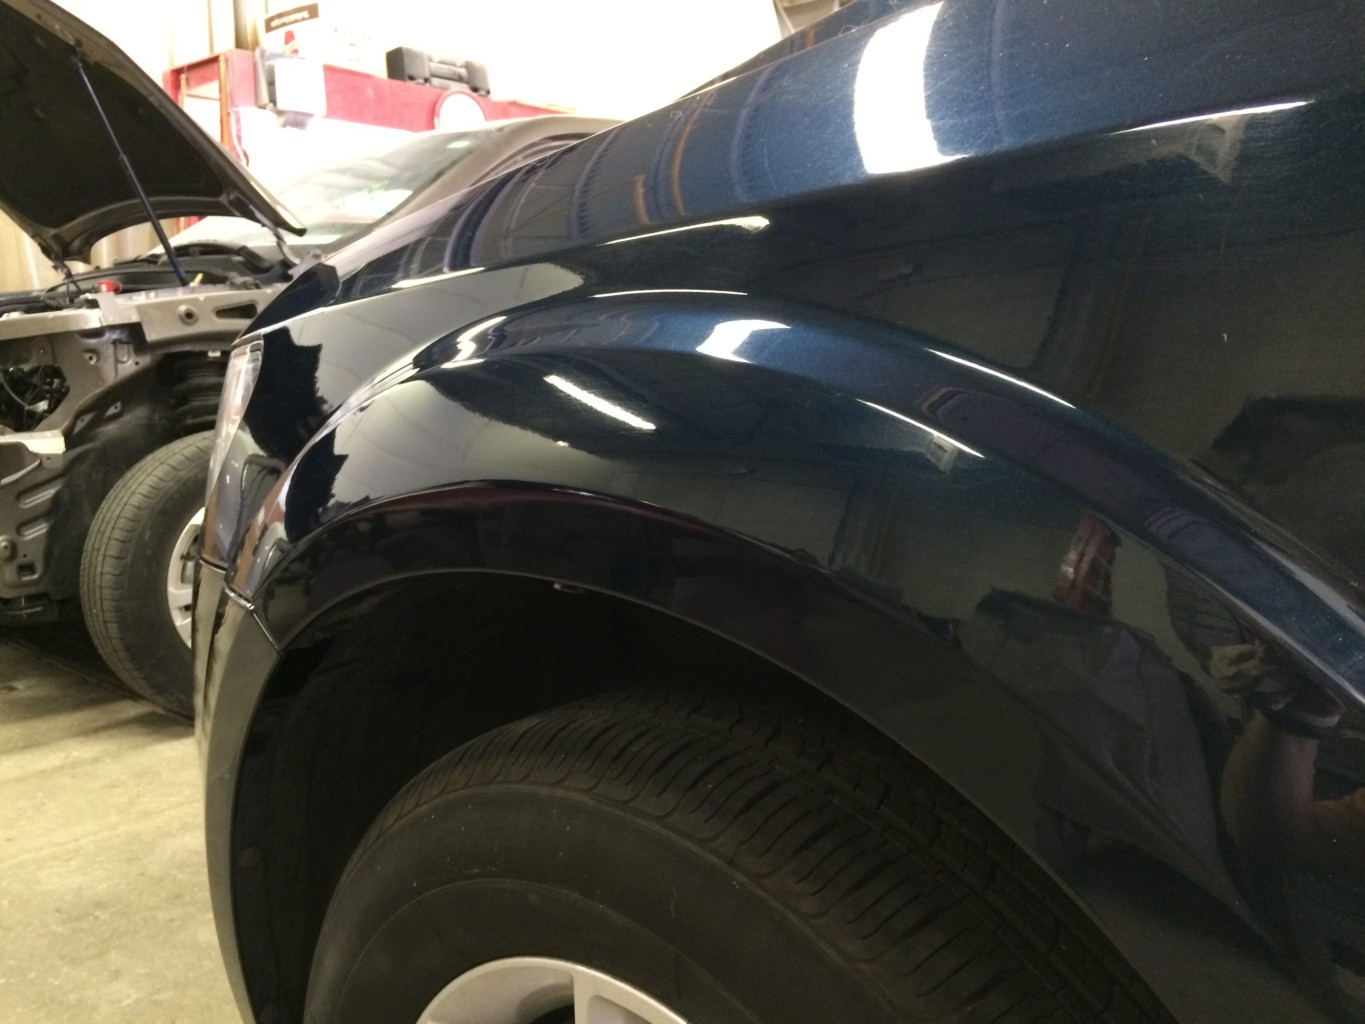 Paintless Dent Repair Grand Rapids, Michigan: Journey fender - after